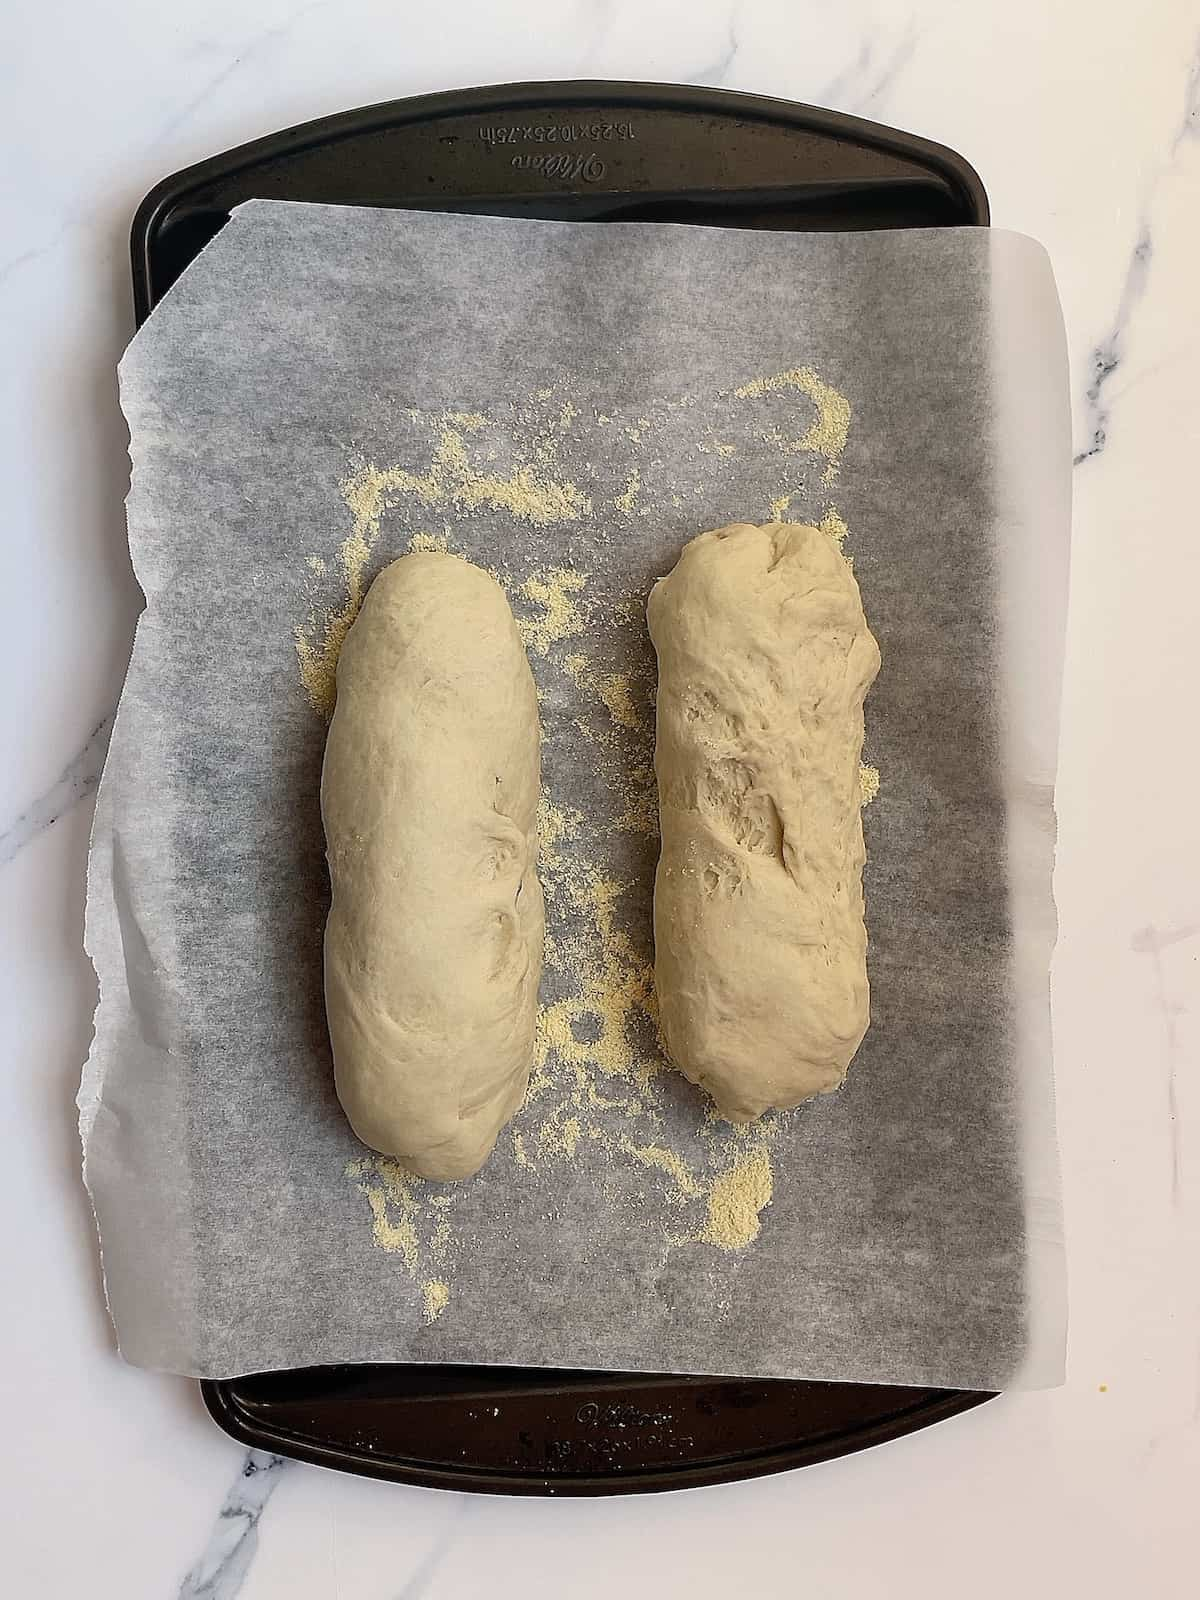 2 shaped loaves of bread on a baking sheet